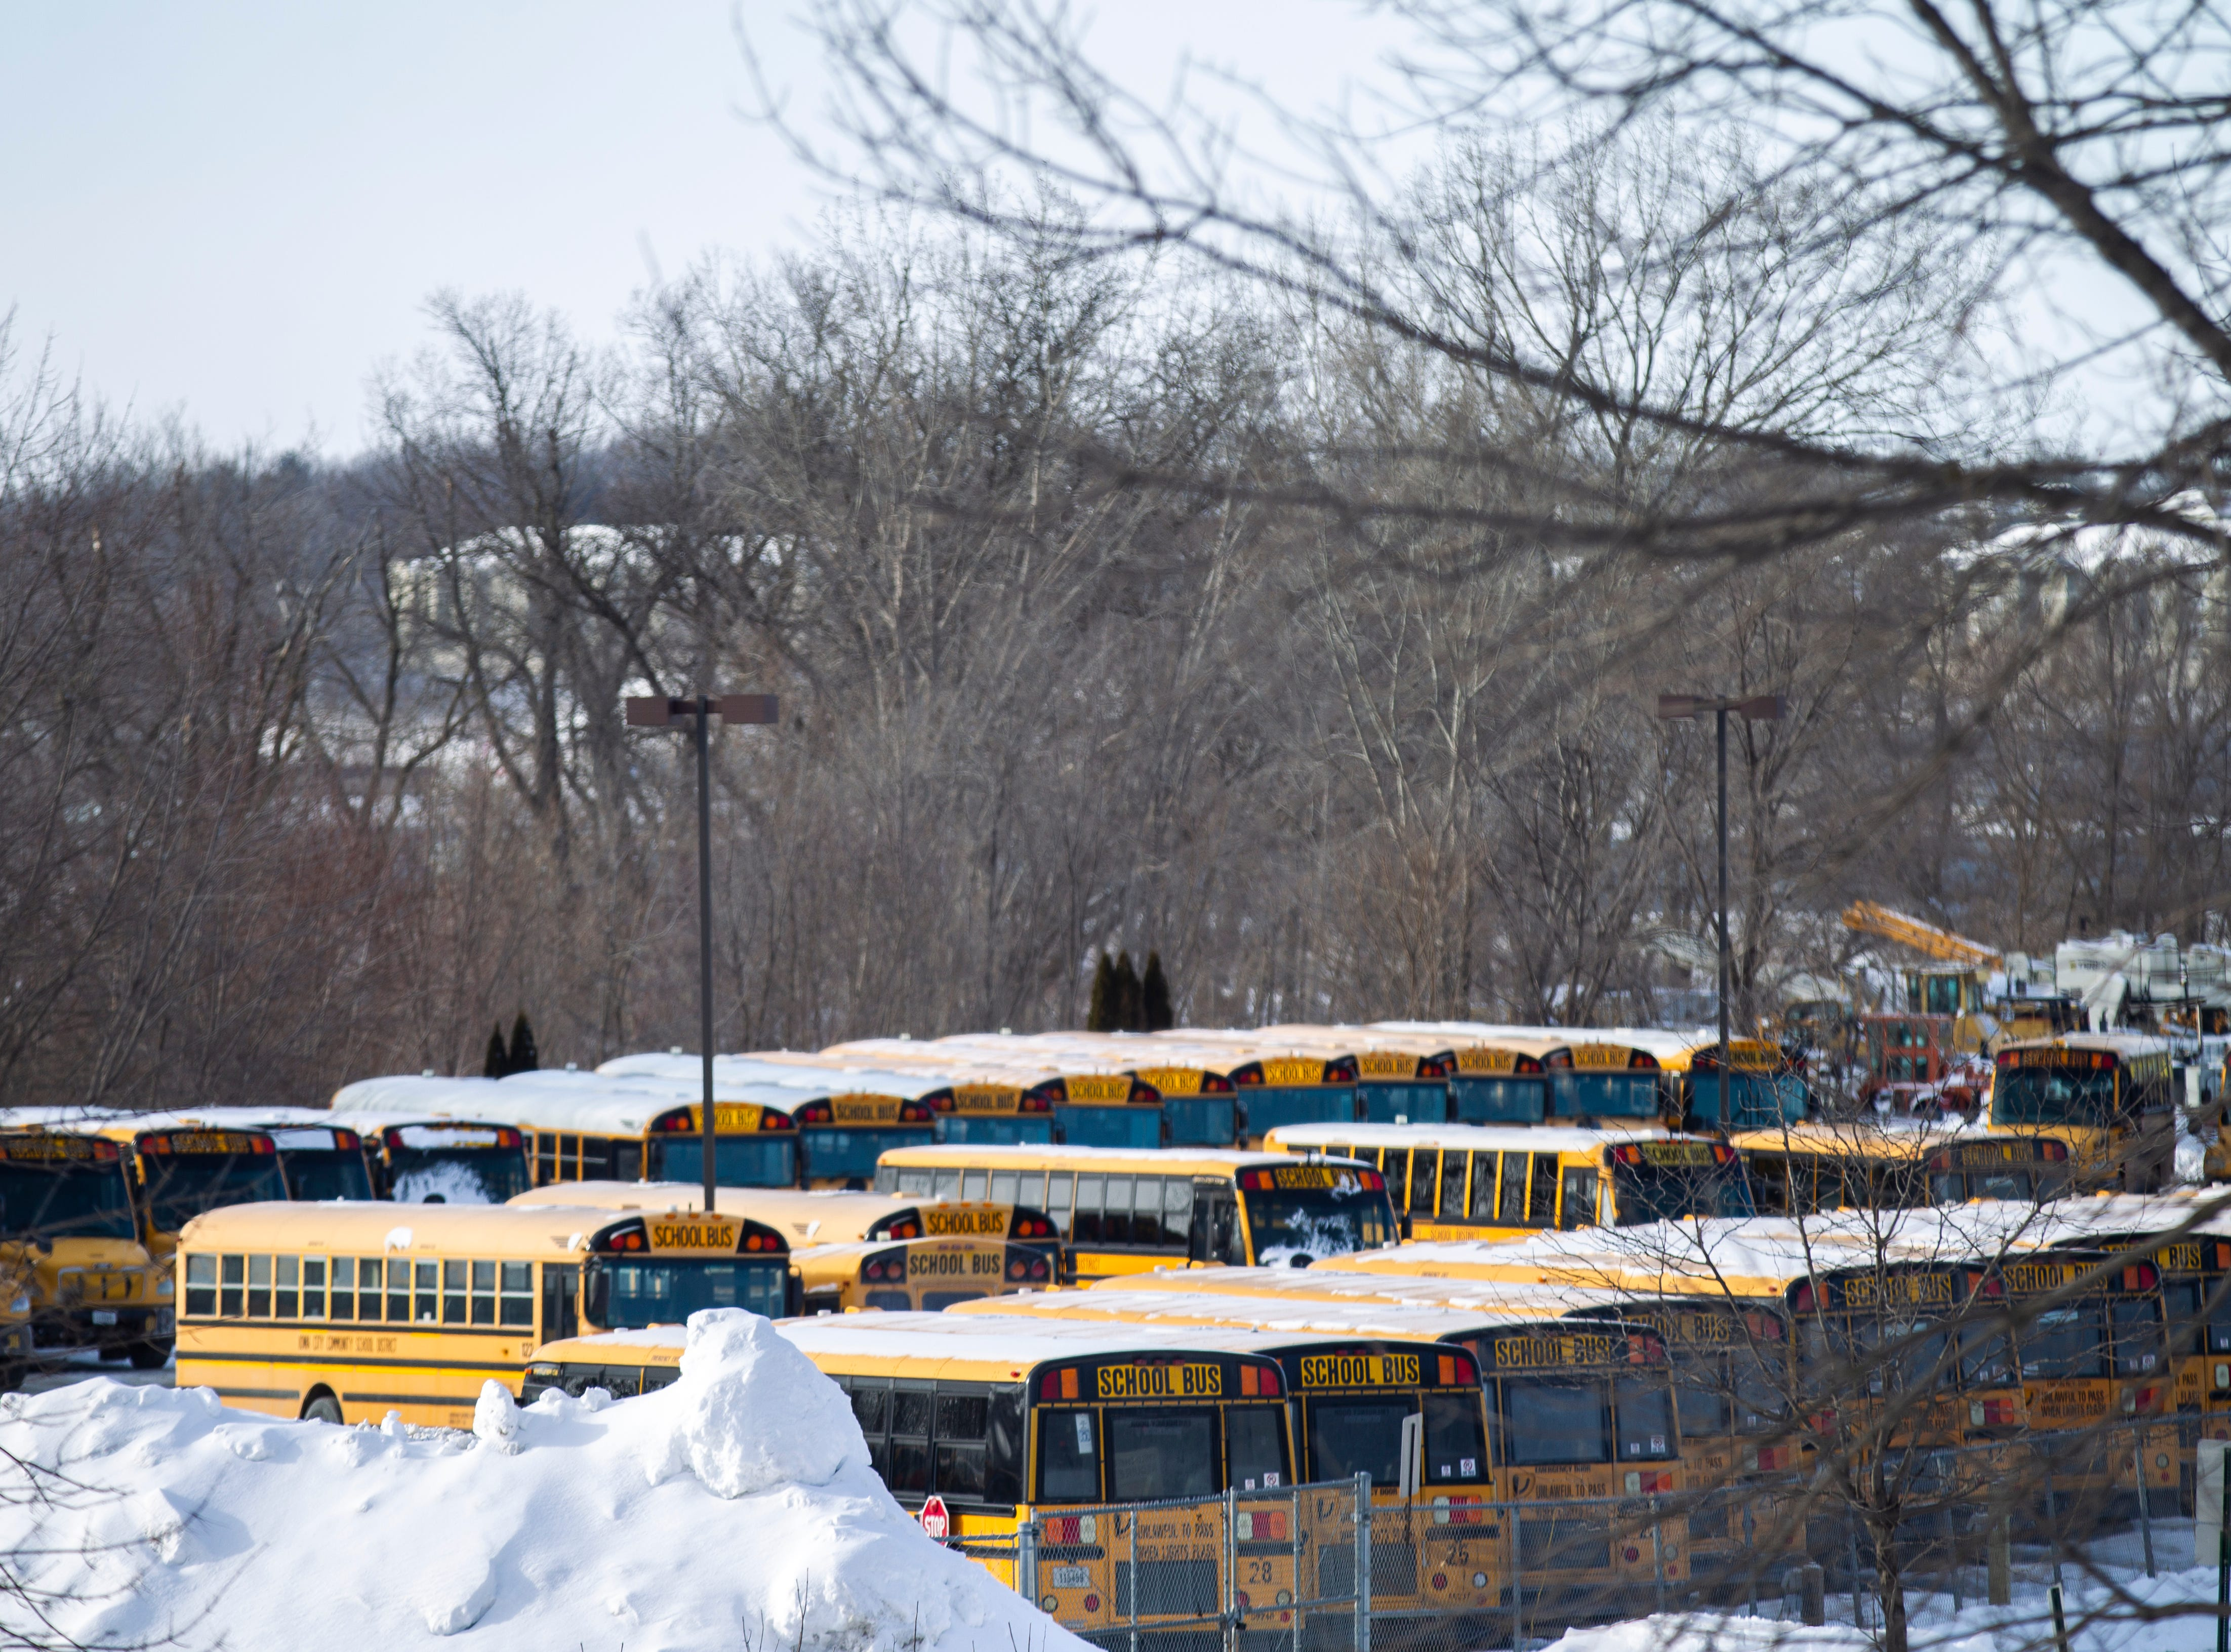 Iowa City Community School District busses are seen on Tuesday, Jan. 29, 2019, at Durham School Services in Iowa City, Iowa.